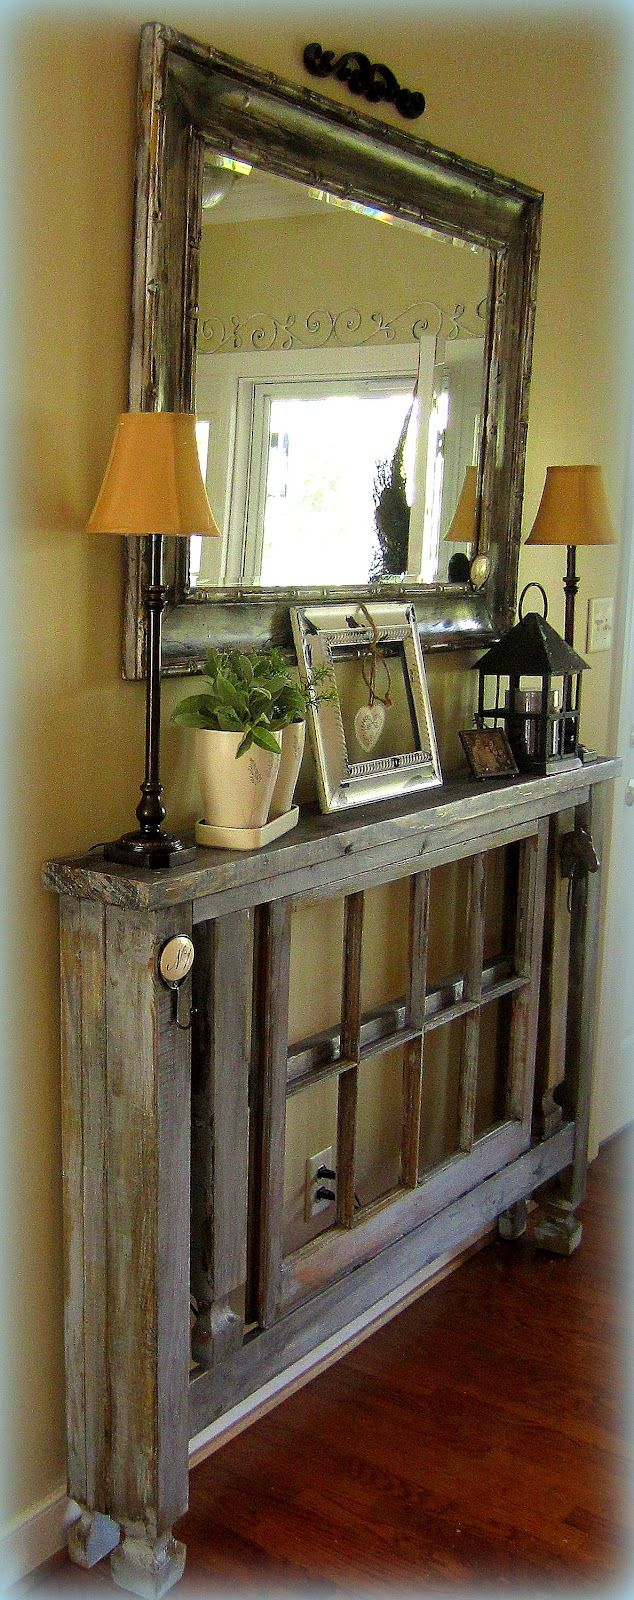 119 best images about crafts on pinterest shutter shelf Table entree design